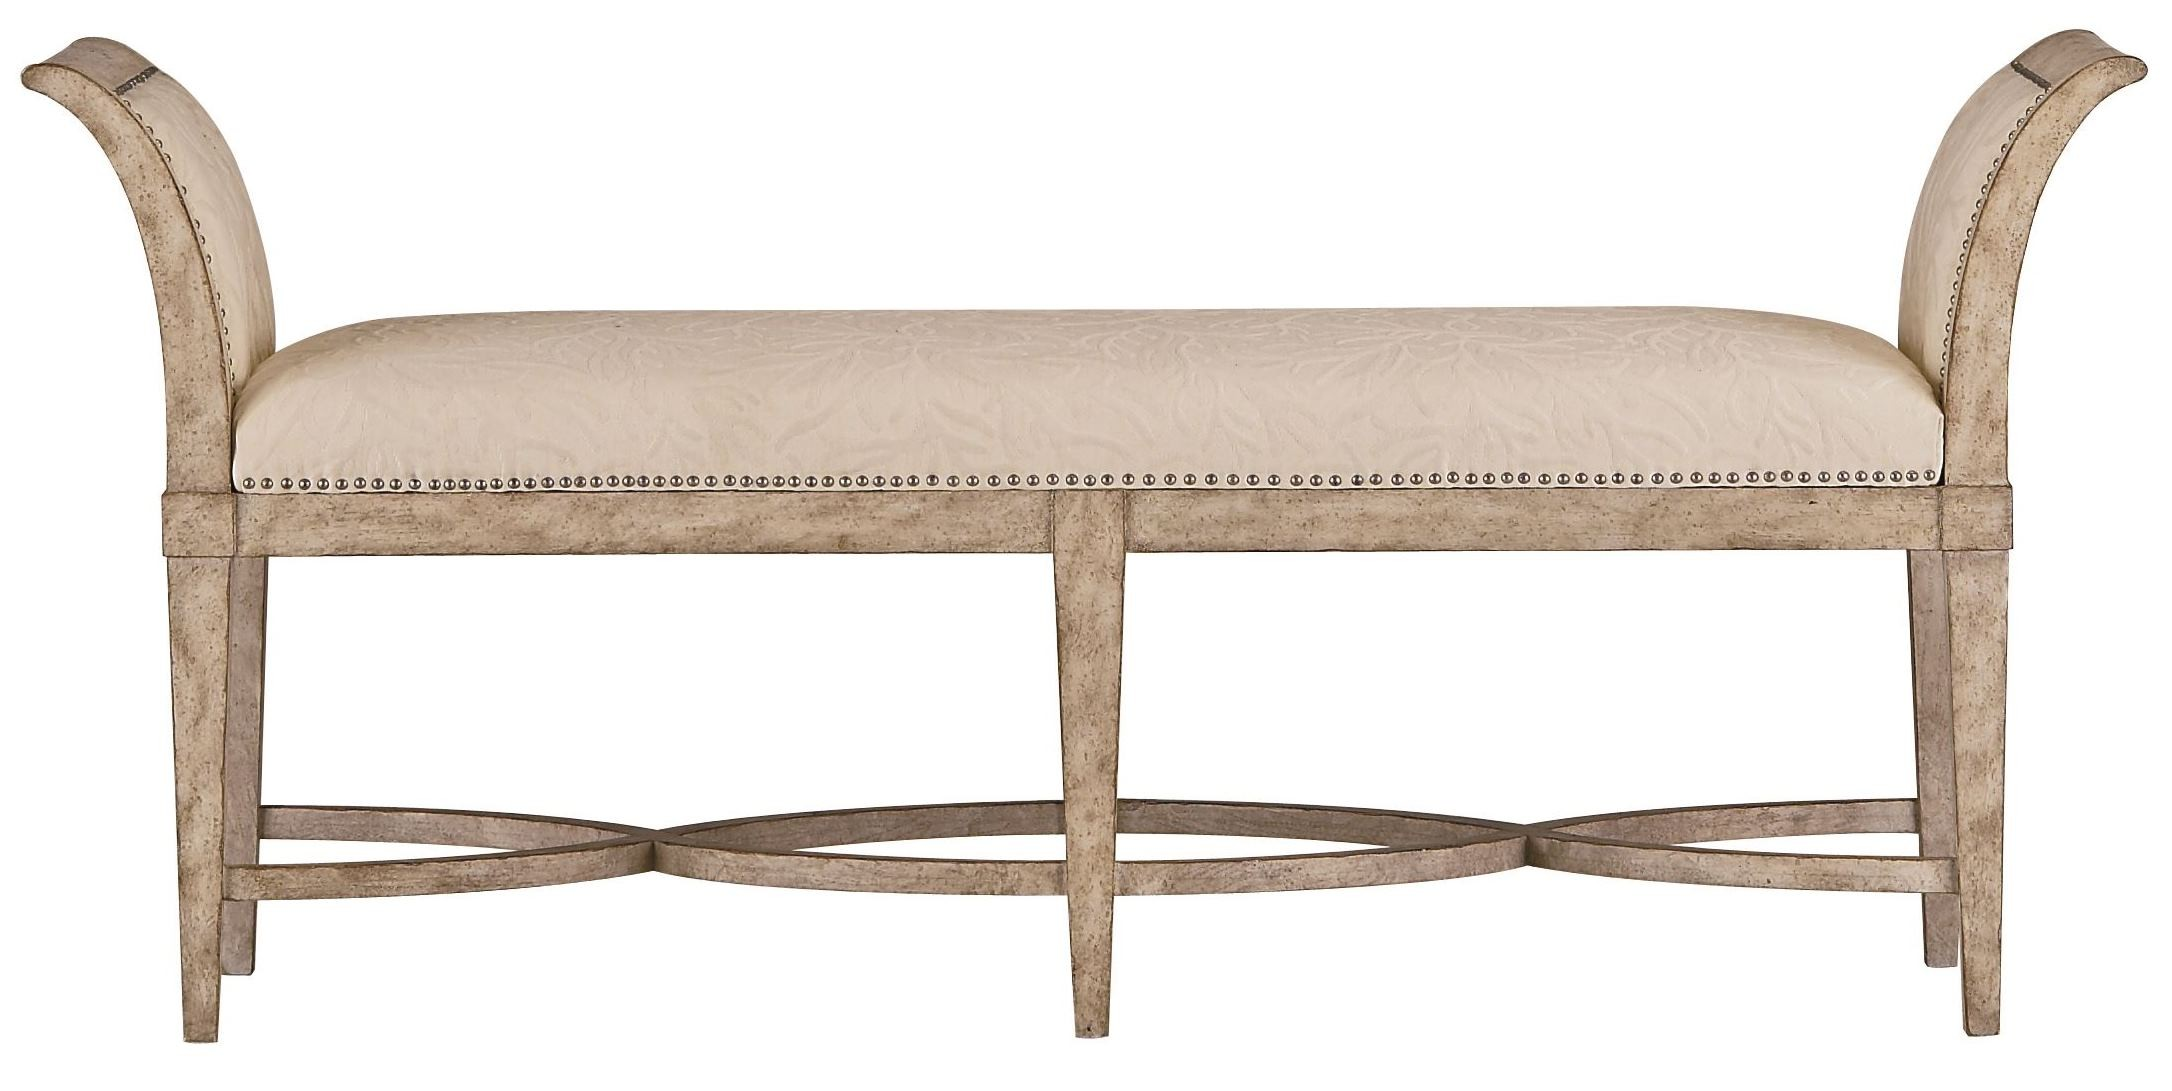 Coastal Living Resort Sandy Linen Surfside Bed End Bench From Coastal Living 062 23 72